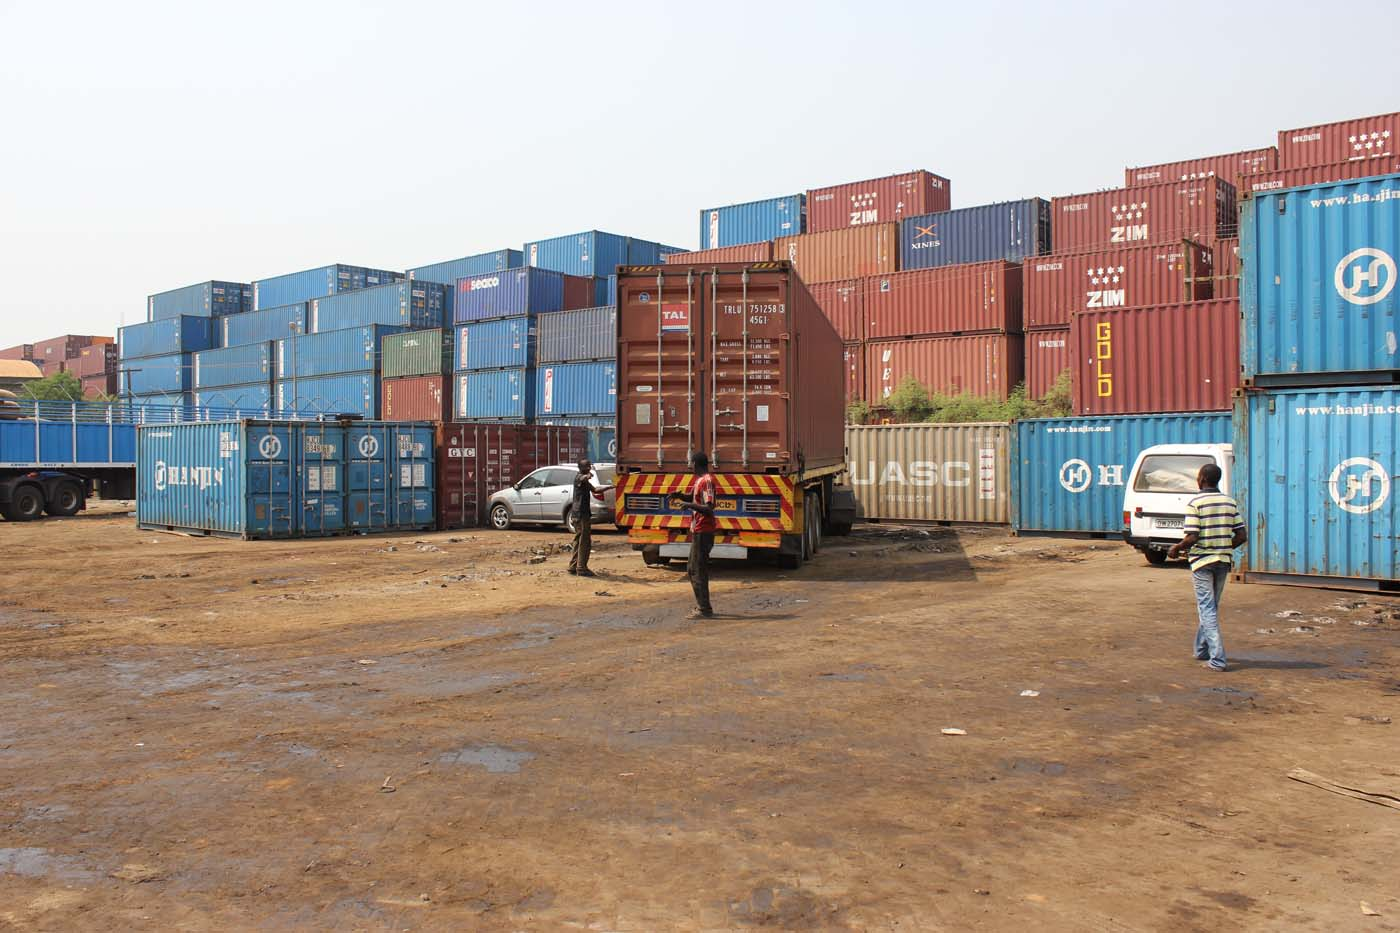 Selecting a shipping container at the port